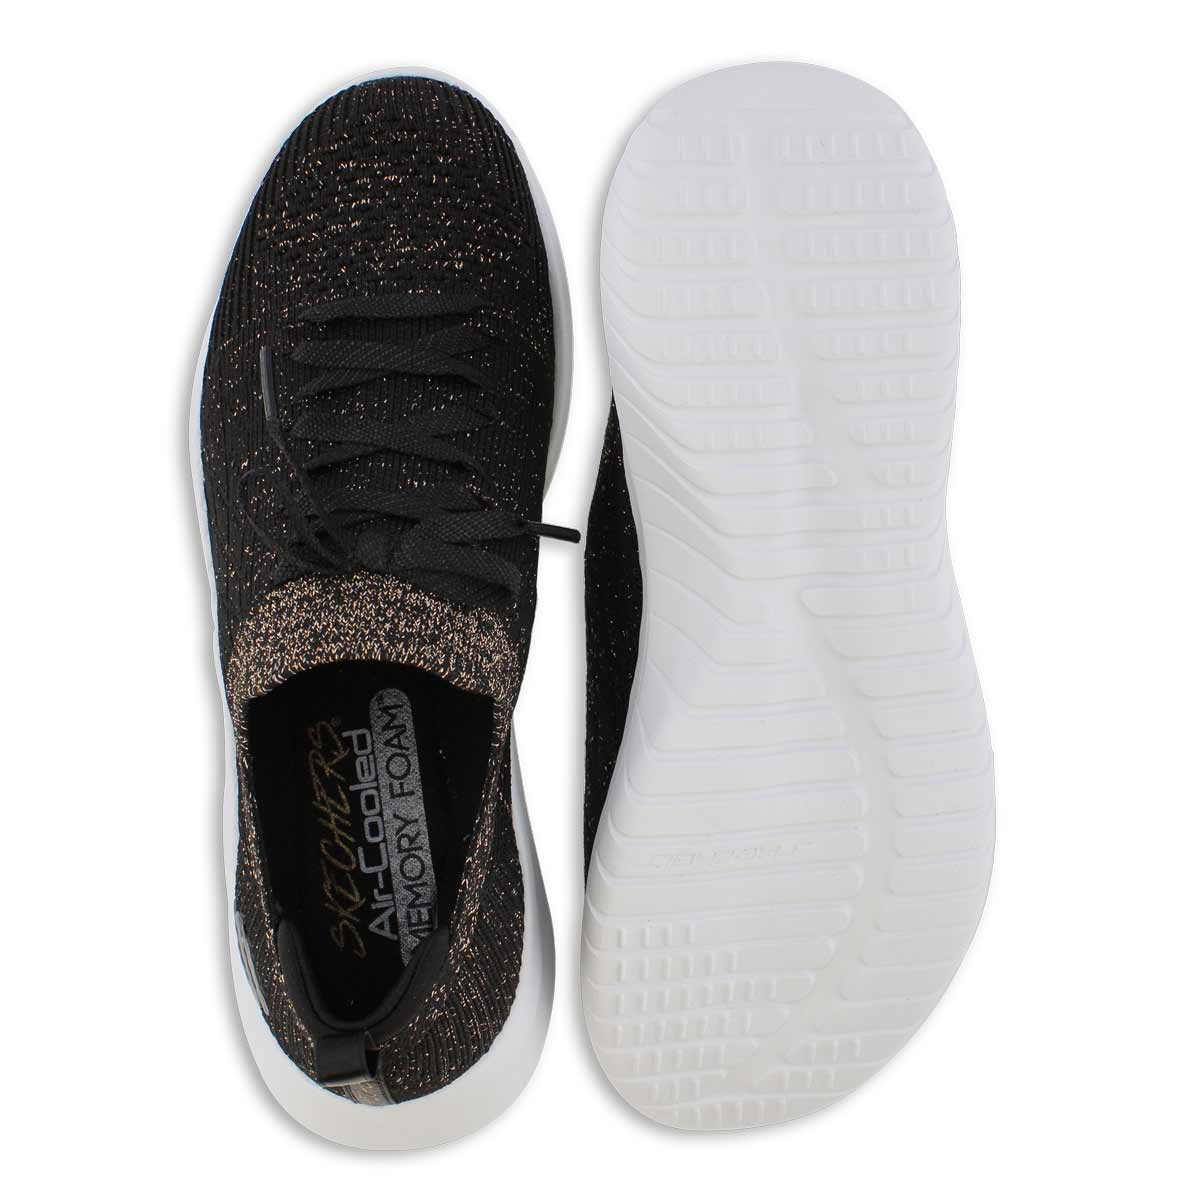 Lds Ultra Flex 2.0 blk/gold slip on snkr